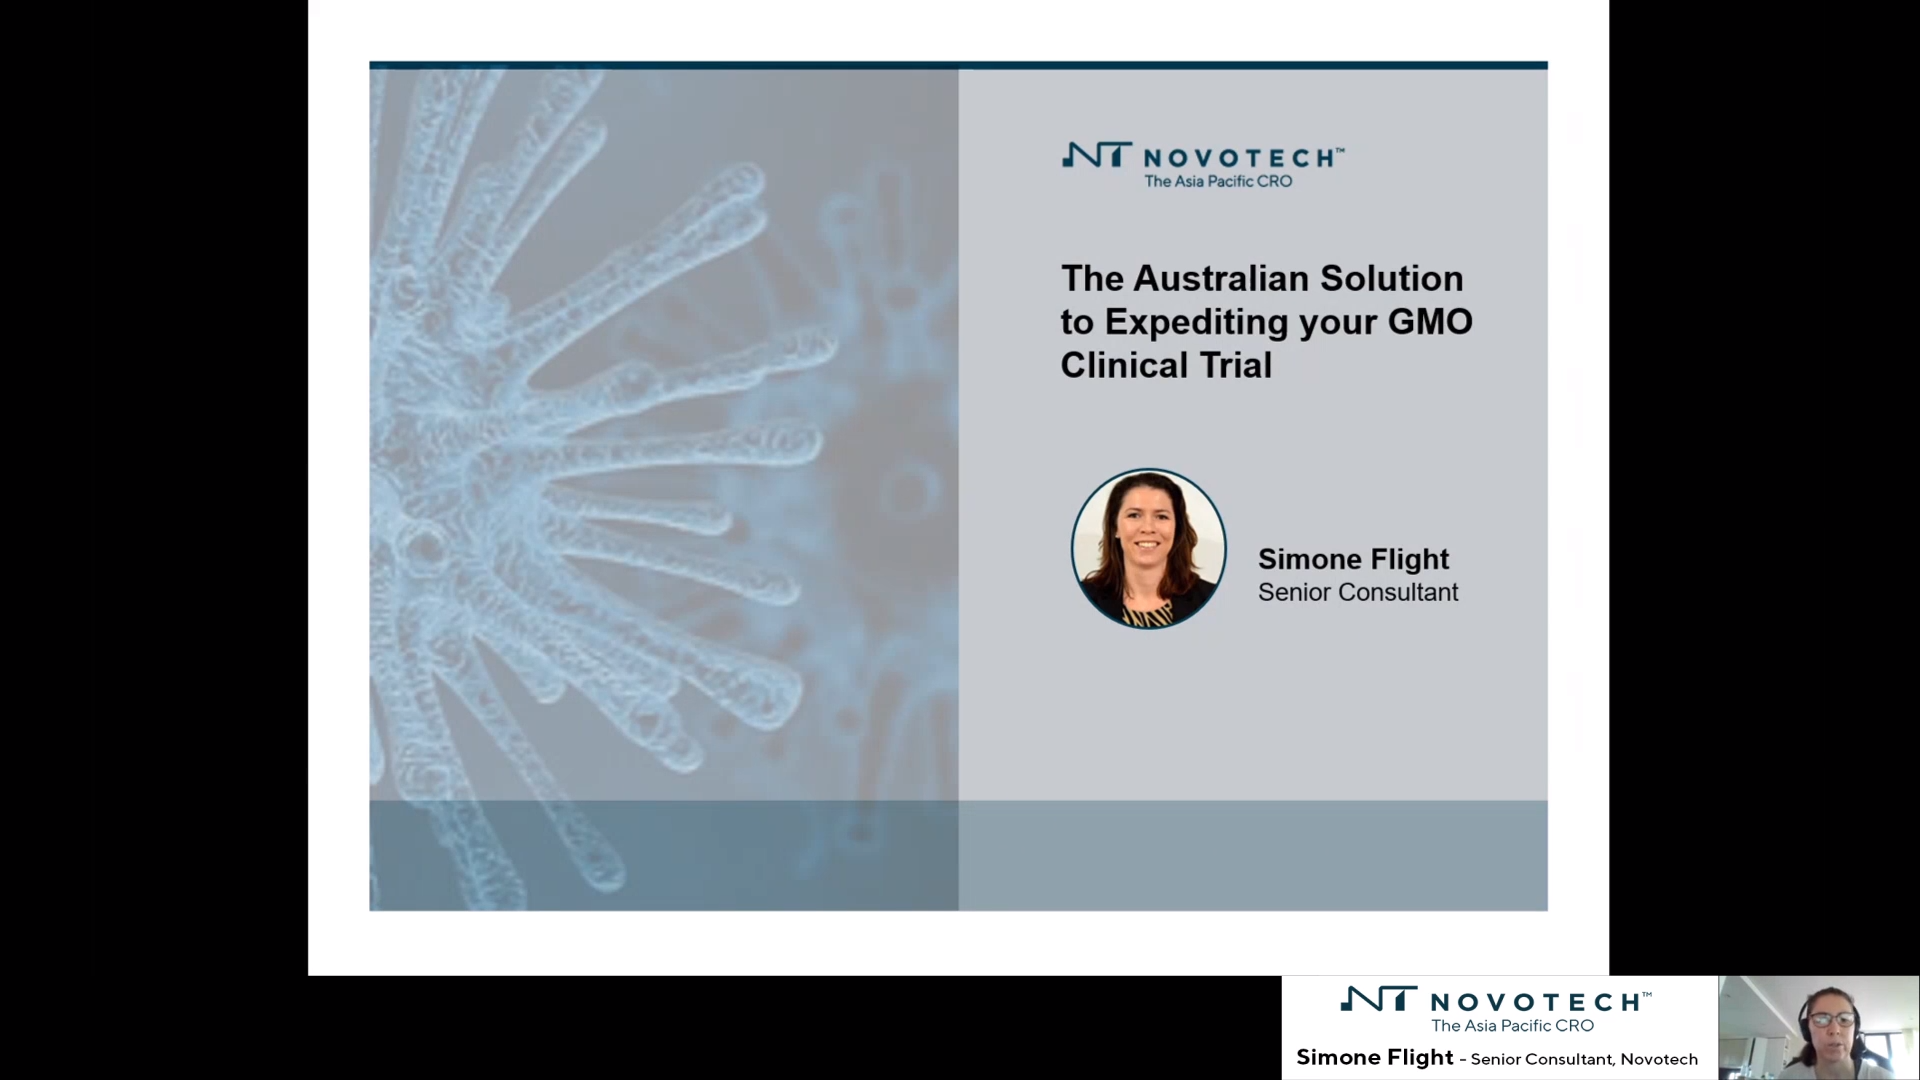 The Australian Solution to expediting your GMO clinical trial